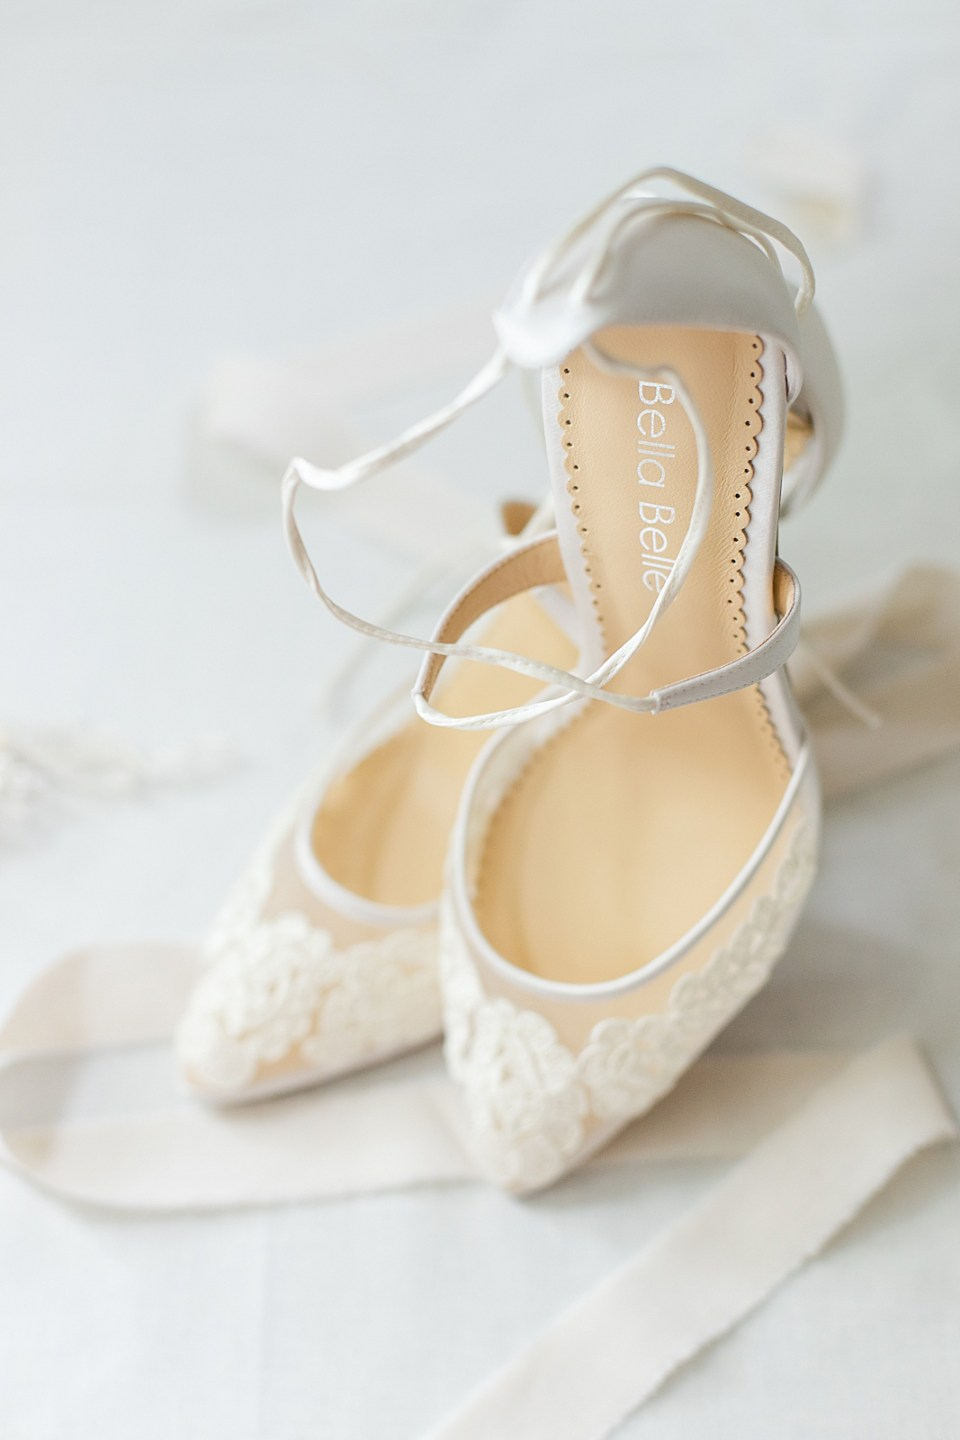 The bride's Bella Belle heels with lace.